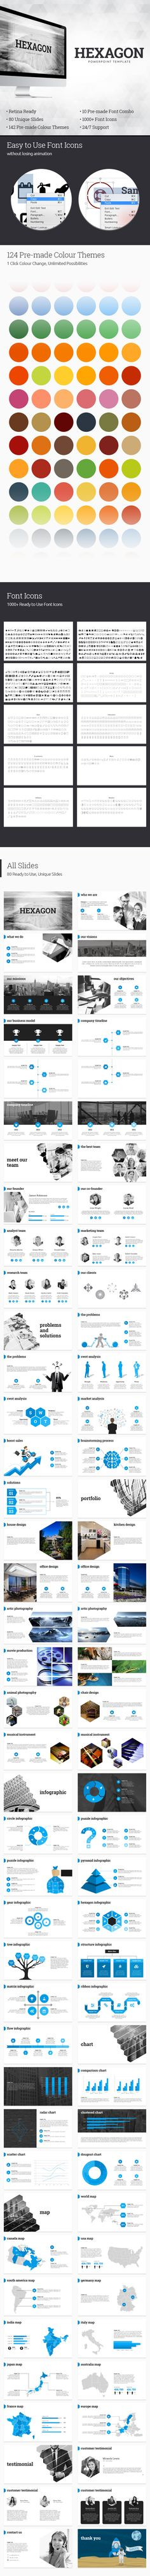 Hexagon - PowerPoint Template - Business #PowerPoint Templates Download here: https://graphicriver.net/item/hexagon-powerpoint-template/18923424?ref=alena994